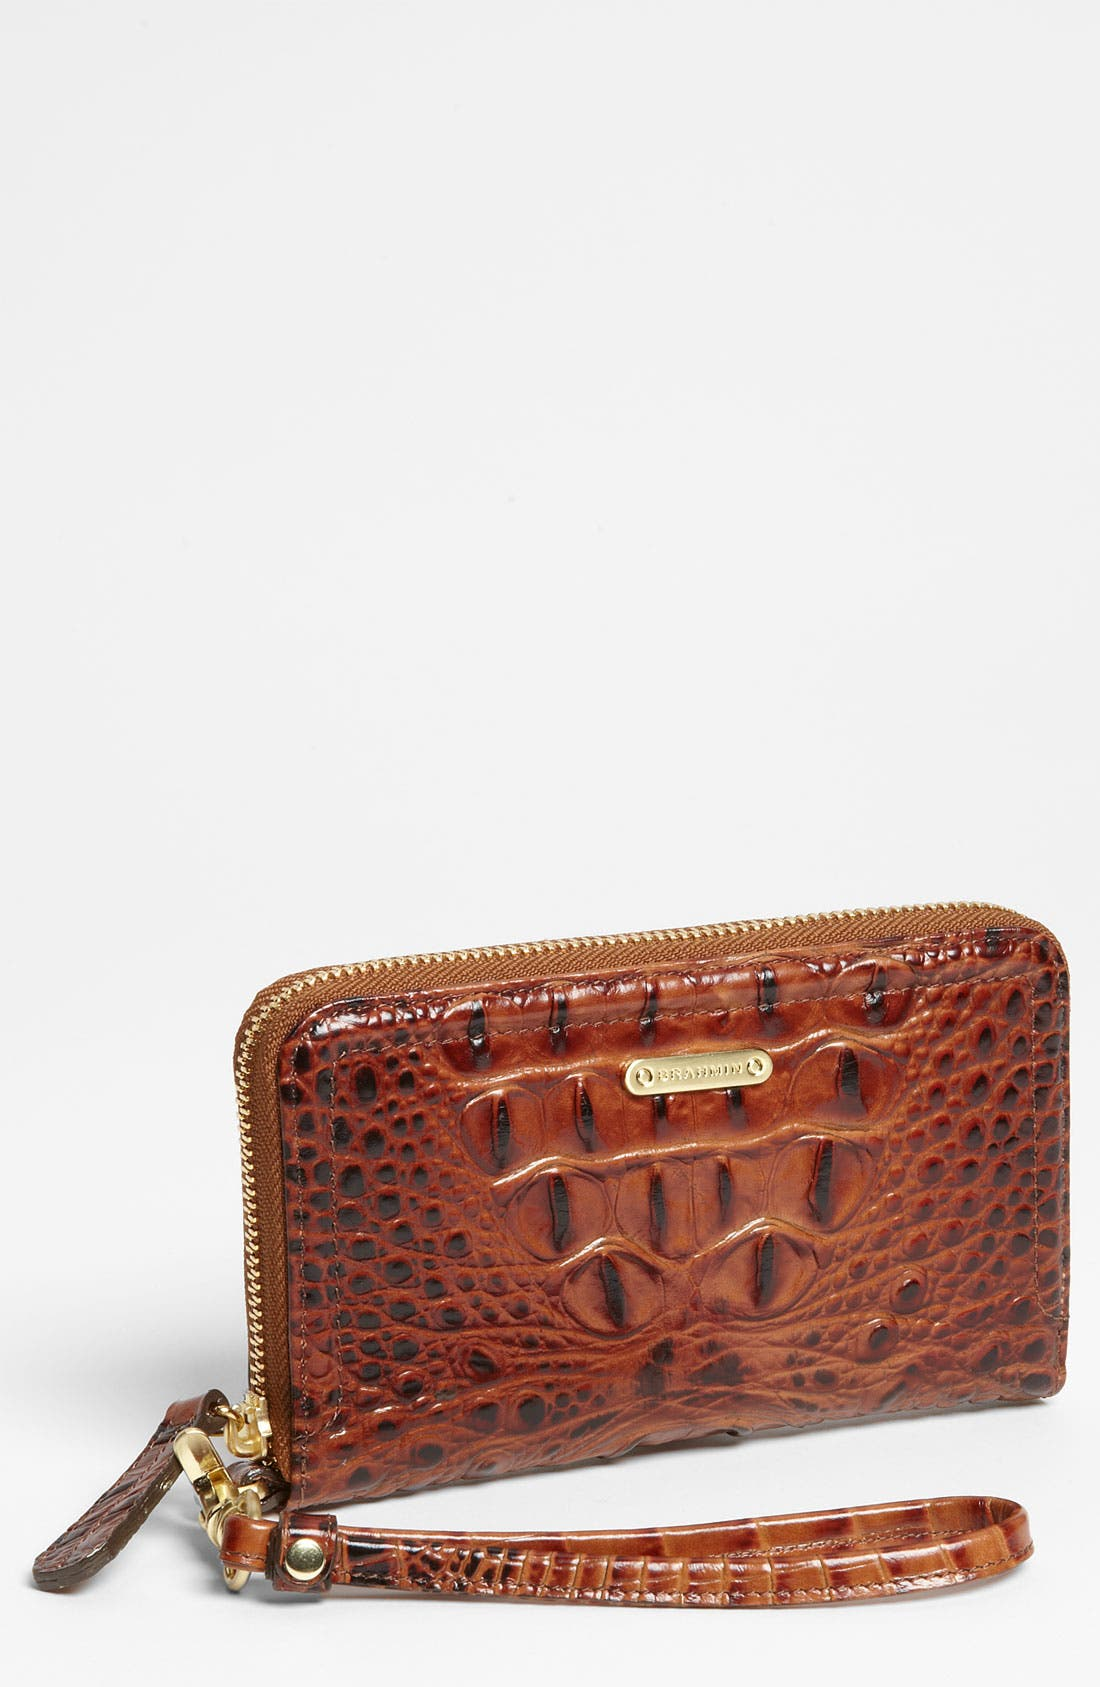 Alternate Image 1 Selected - Brahmin 'Riley' Croc Embossed Leather Wristlet